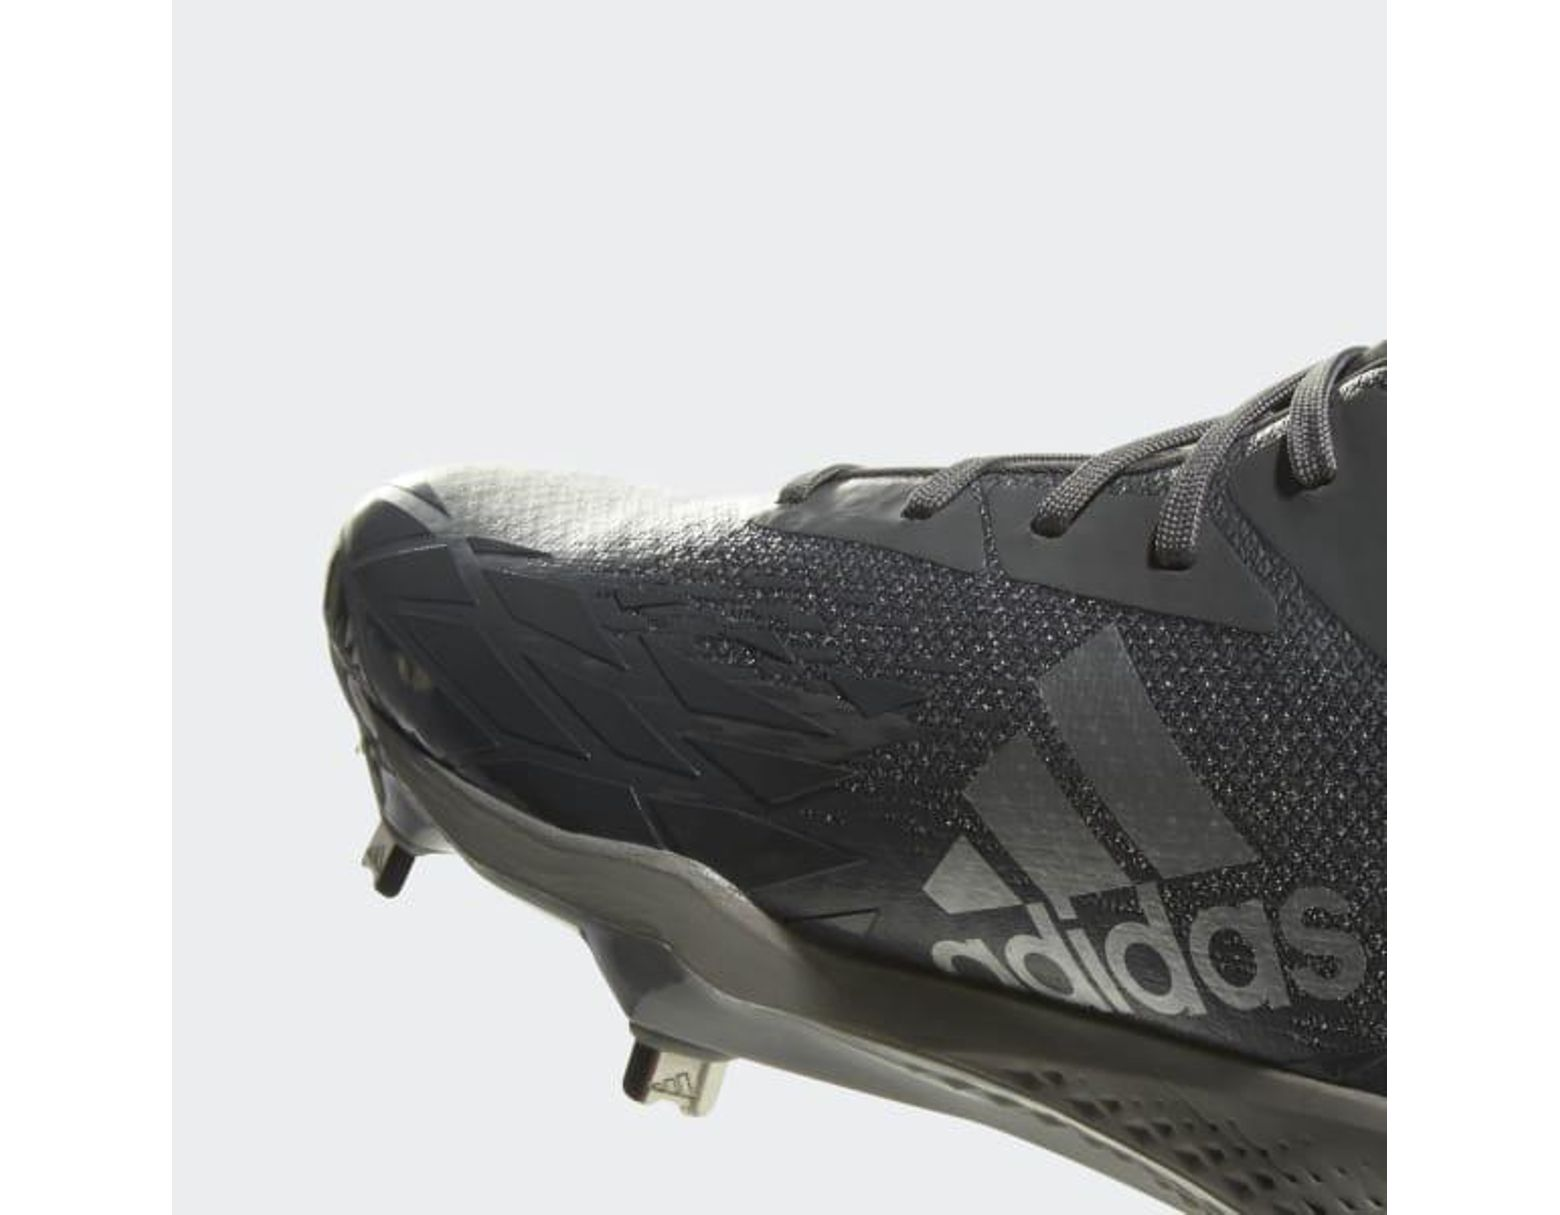 bcb74f9de26e adidas Adizero Afterburner V Dipped Cleats in Gray for Men - Lyst